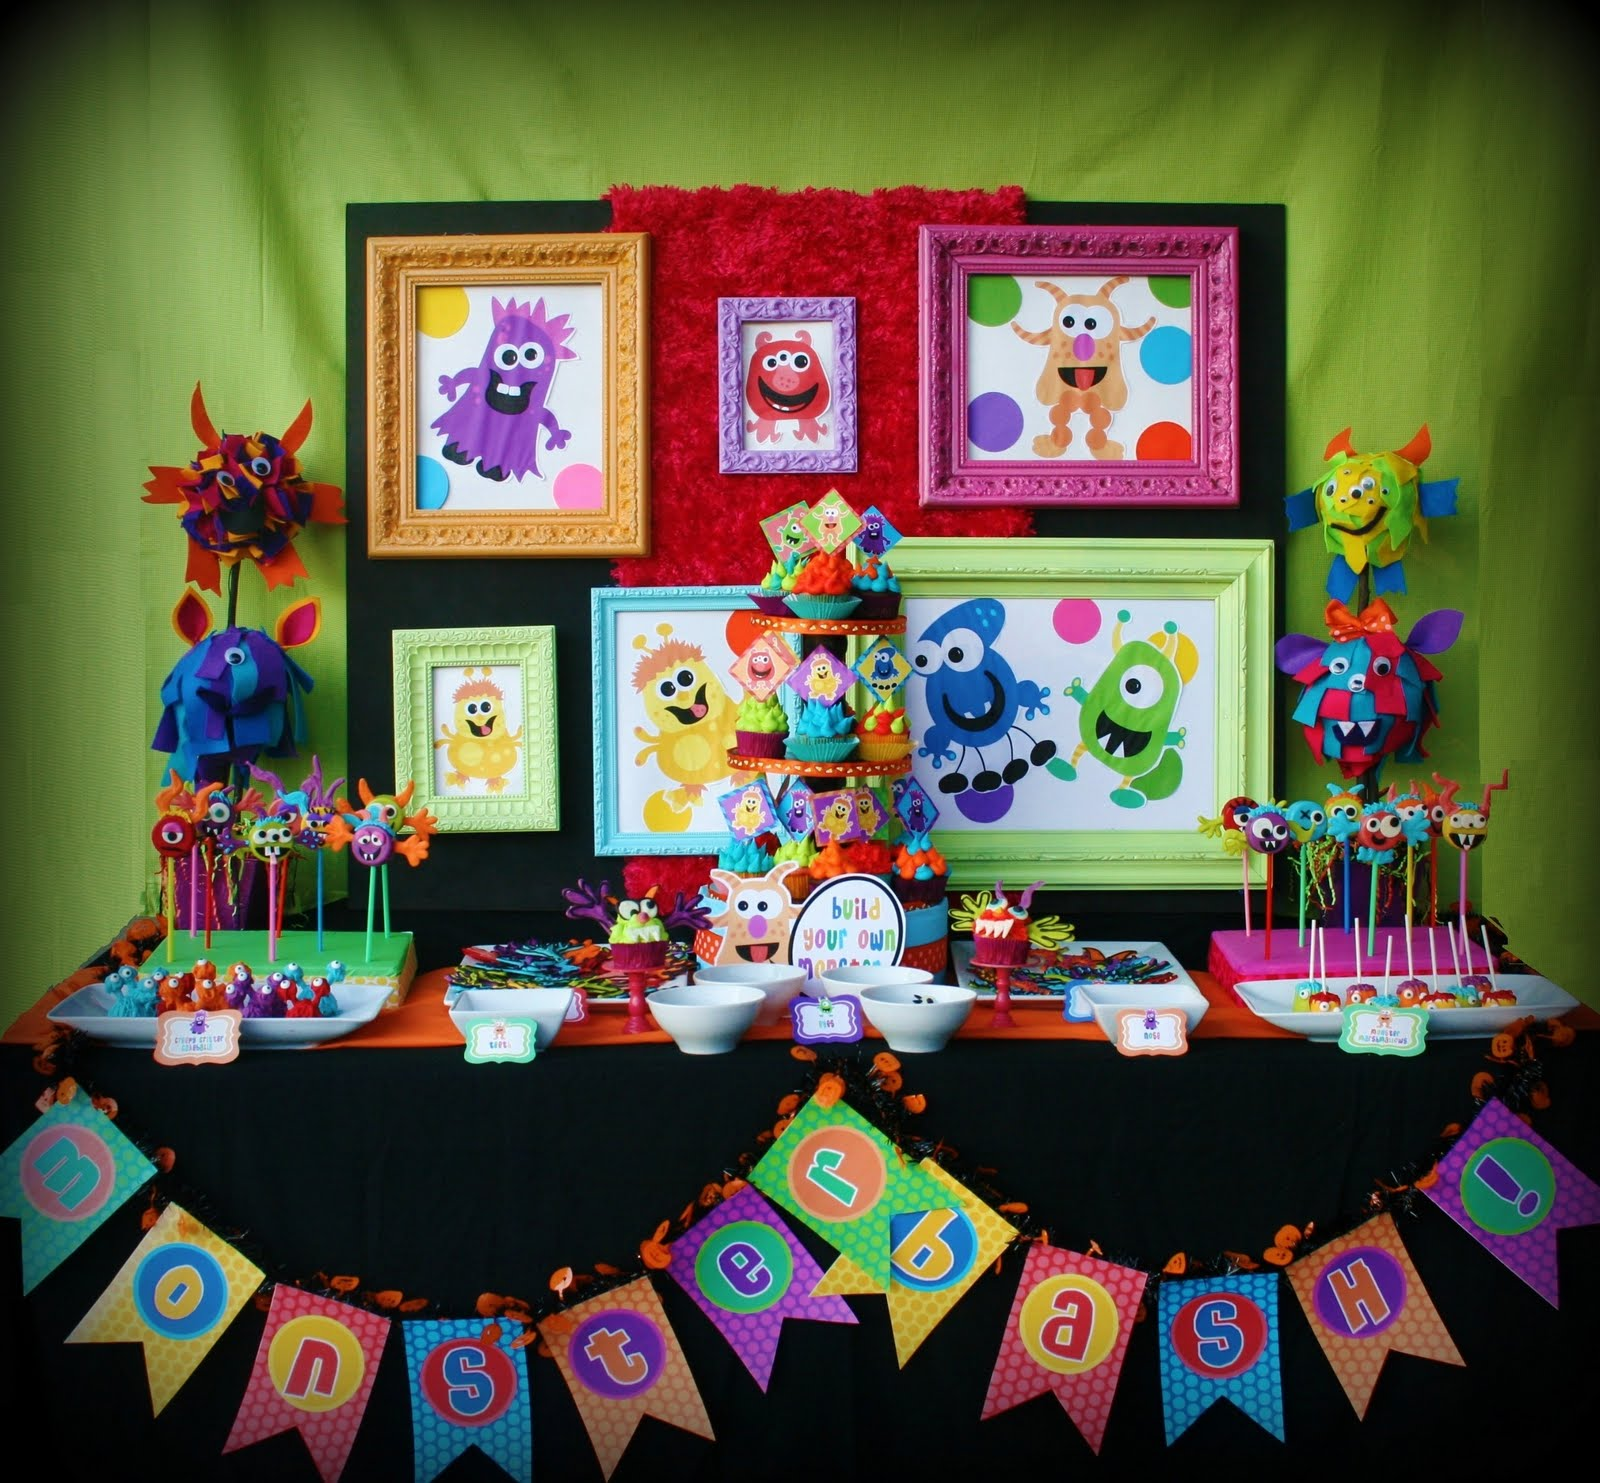 boy and girl birthday party themes ; colorful_monster_bash_party_girl_boy_birthday_cake_sweets_decorations